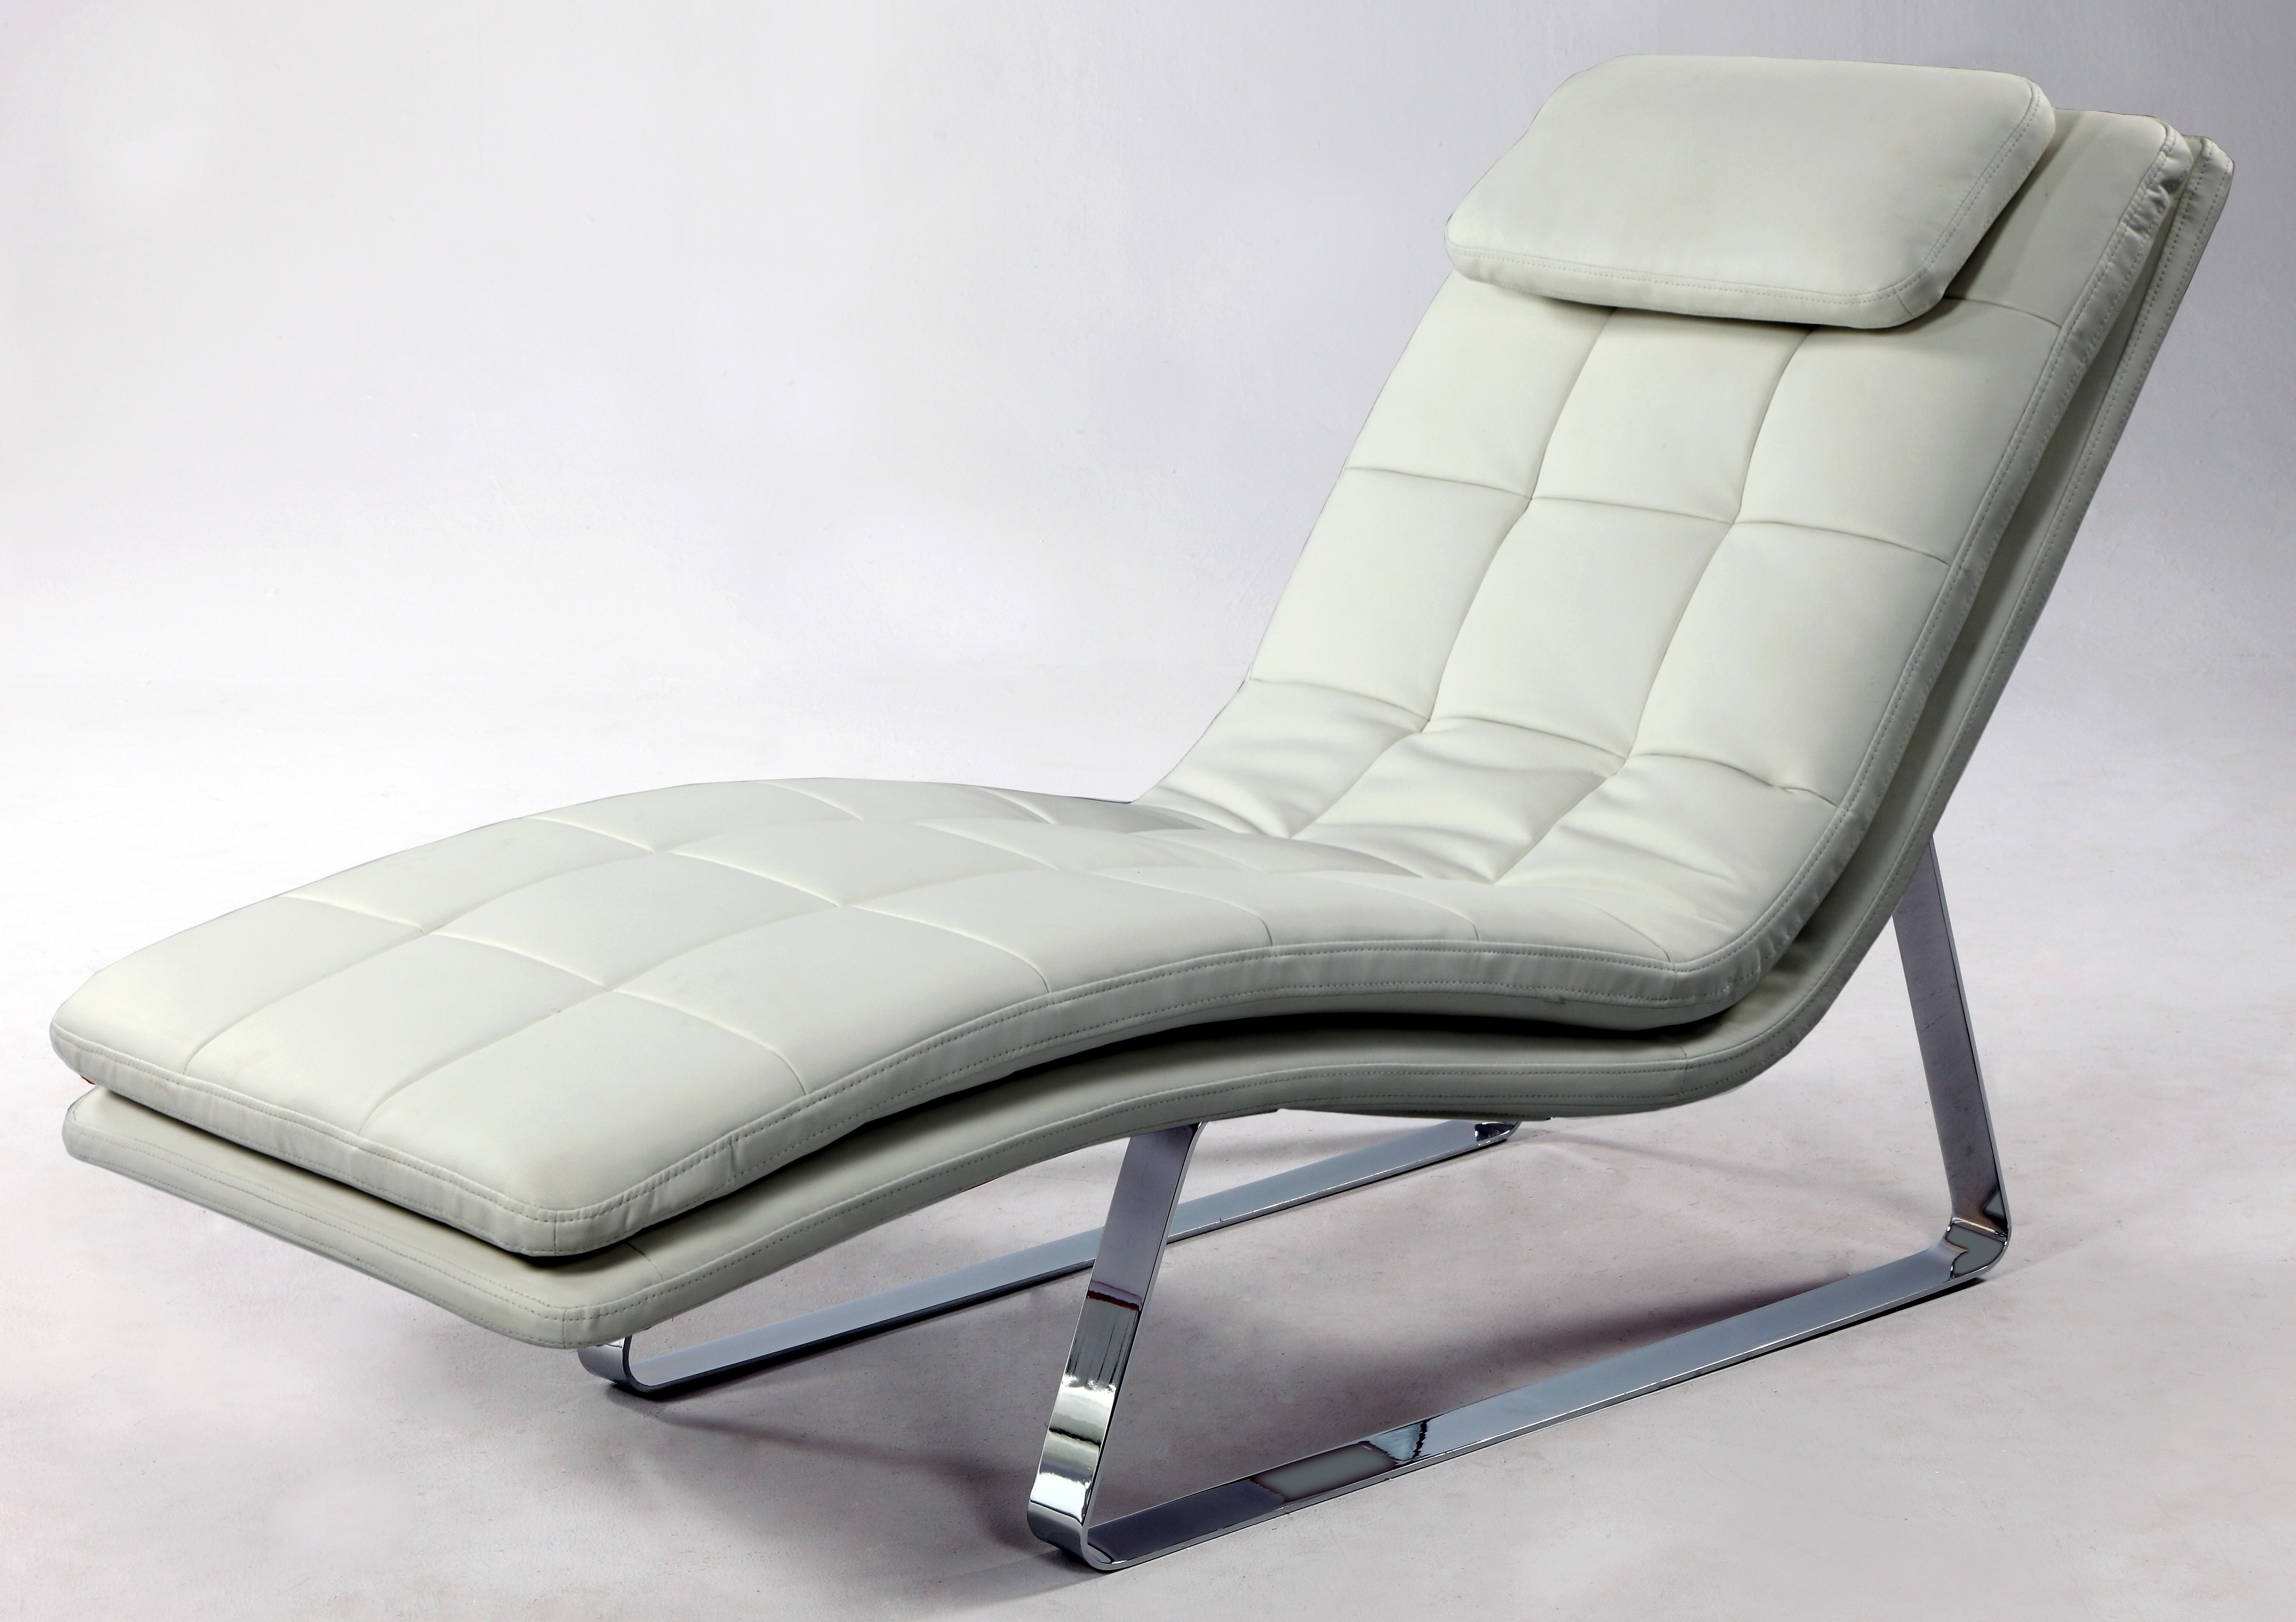 Well Known Modern Chaises Regarding Full Bonded Leather Tufted Chaise Lounge With Chrome Legs New York (View 14 of 15)